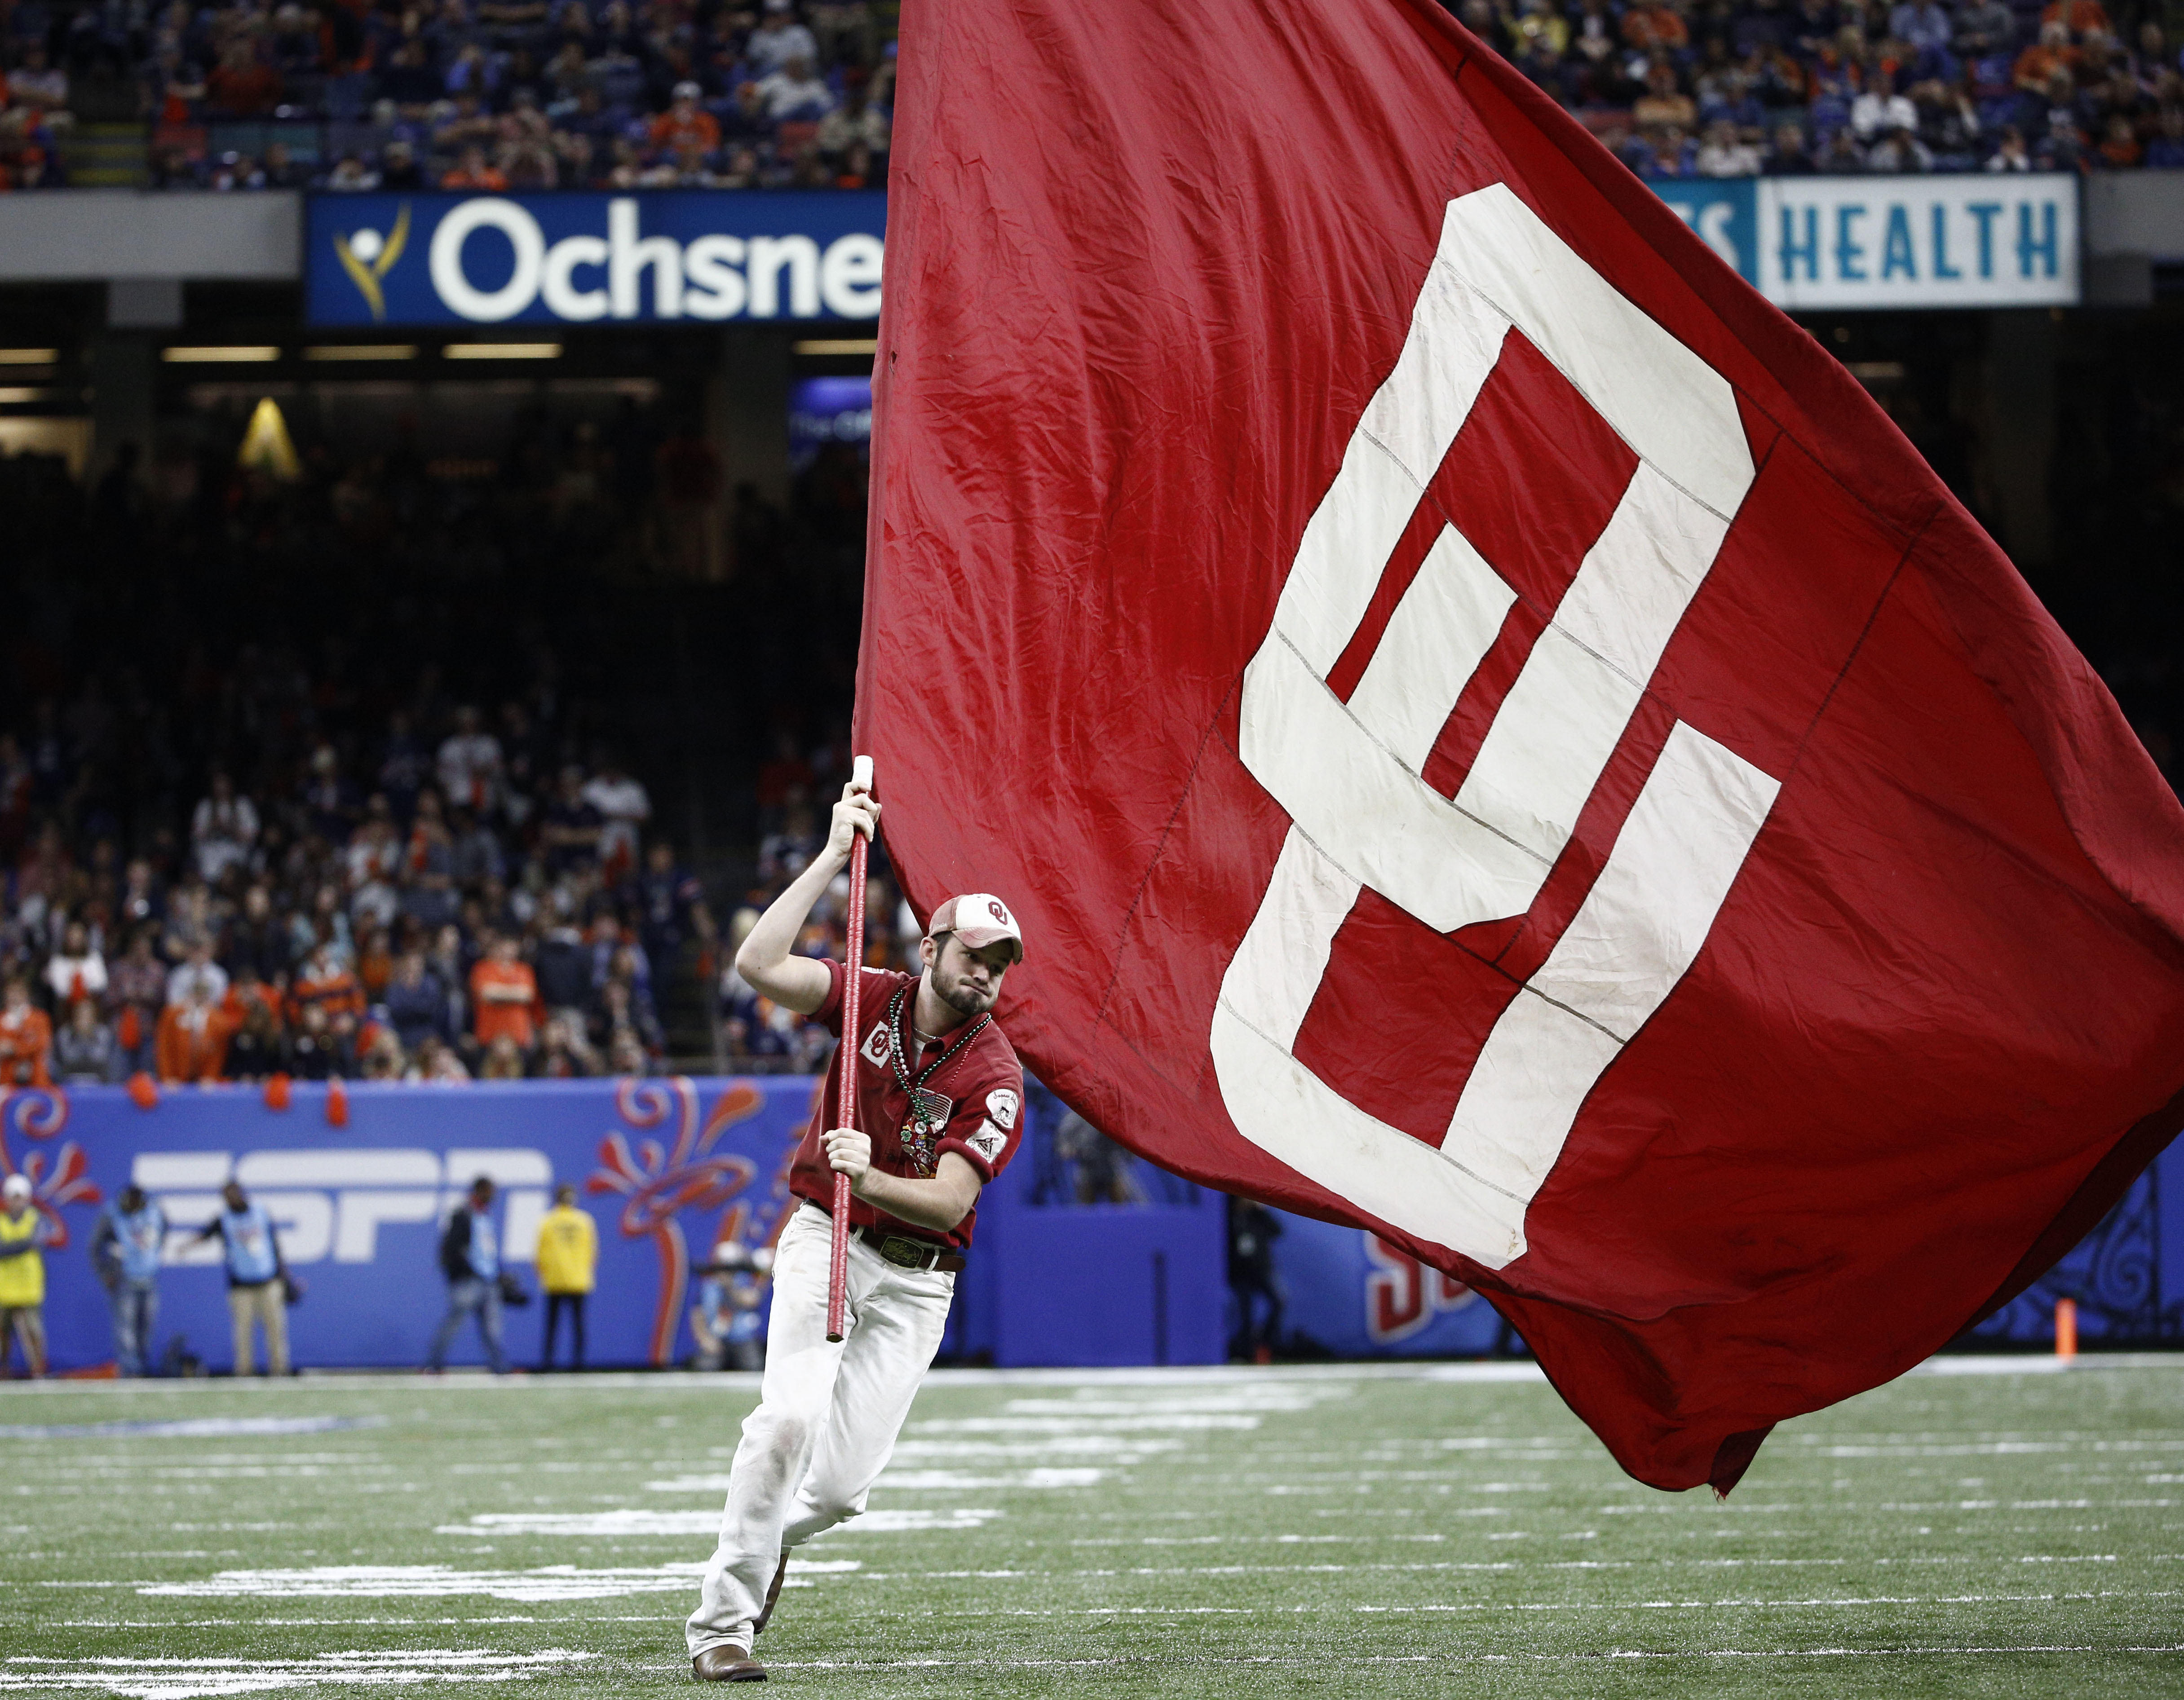 New Oklahoma law allows schools to sue agents, boosters who cause NCAA sanctions